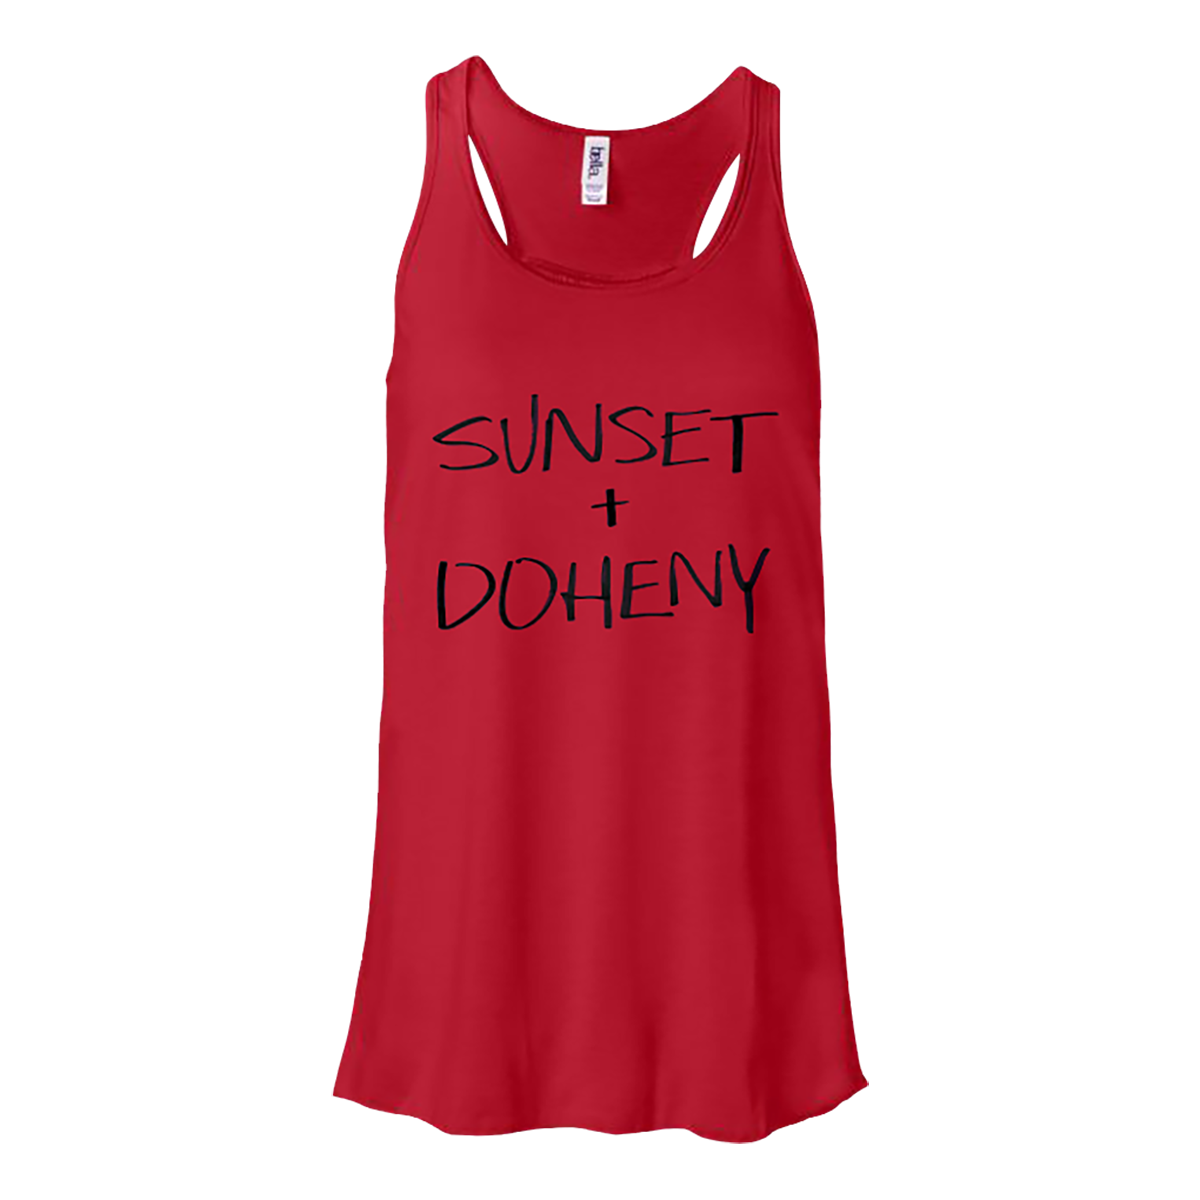 sunset + doheny tank top